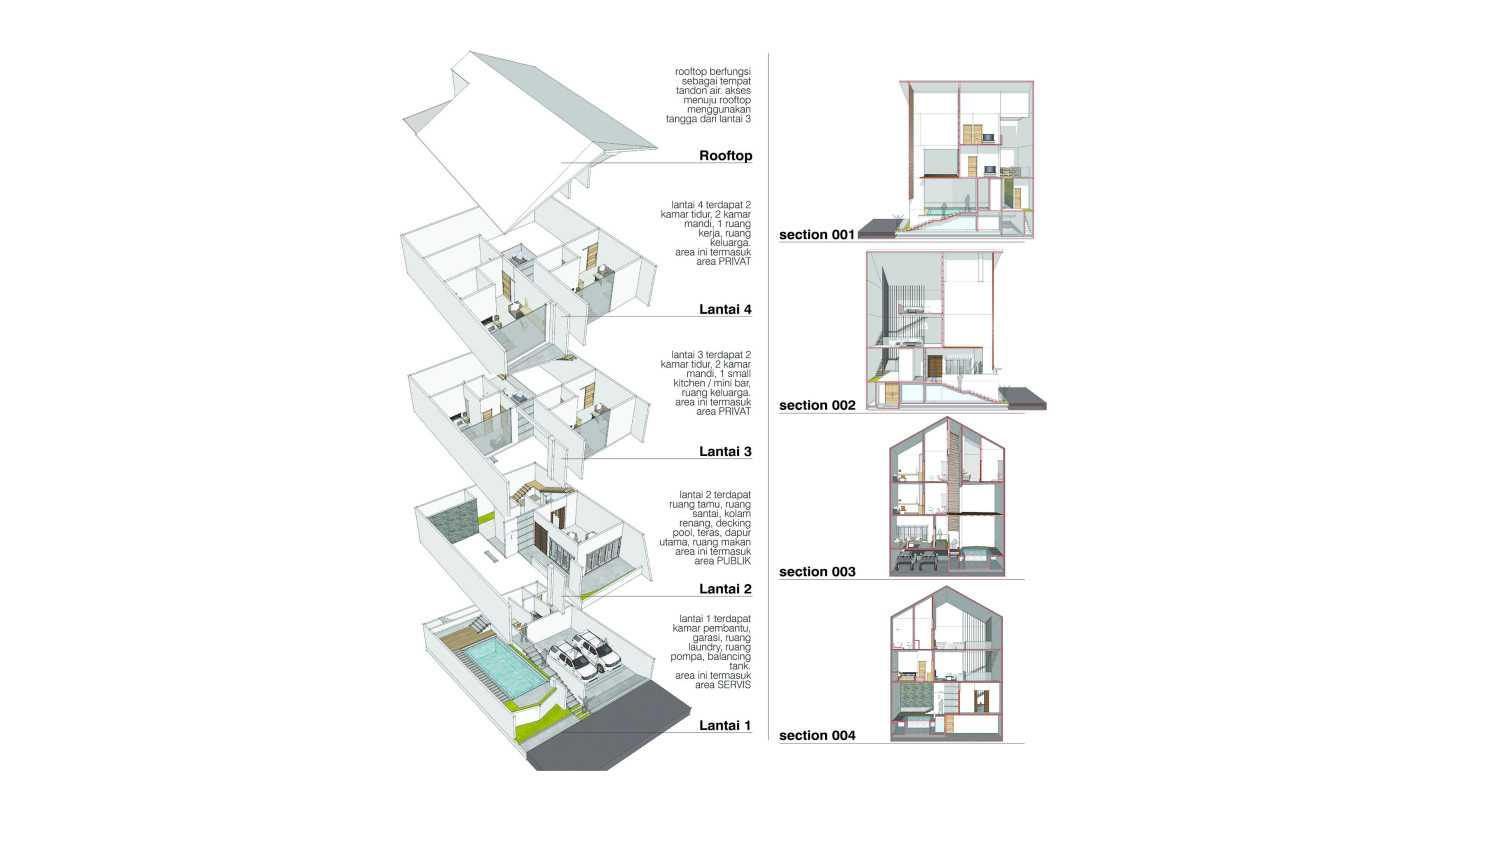 P+Us Architects Studio Omah Ijo Village Condongcatur, Depok Sub-District, Sleman Regency, Special Region Of Yogyakarta, Indonesia Yogyakarta, Indonesia Isometric Floorplan & Section  16983